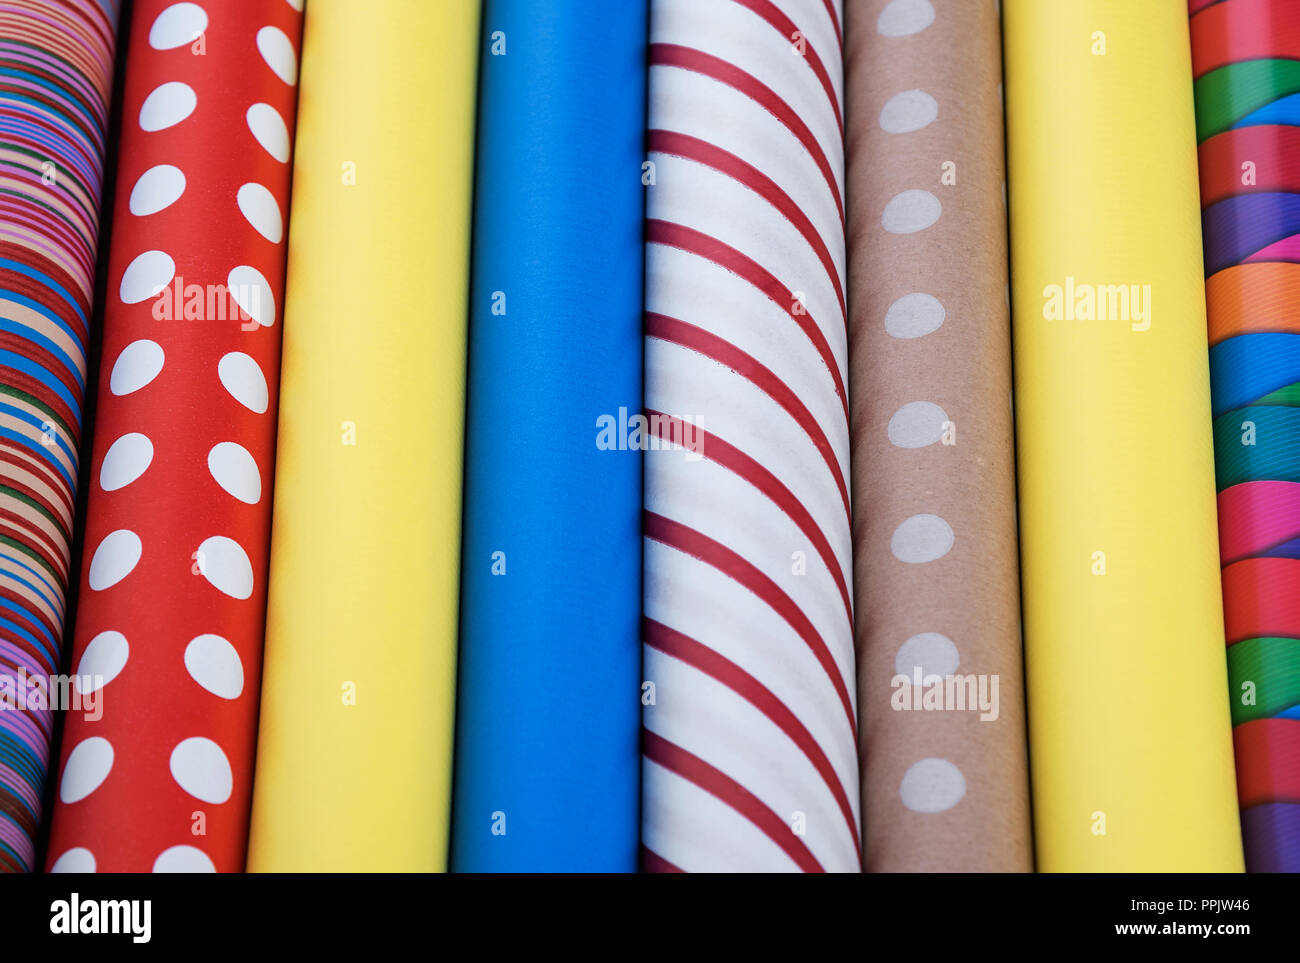 Colorful paper for wrapping gifts. Preparing for a holiday. Stock Photo